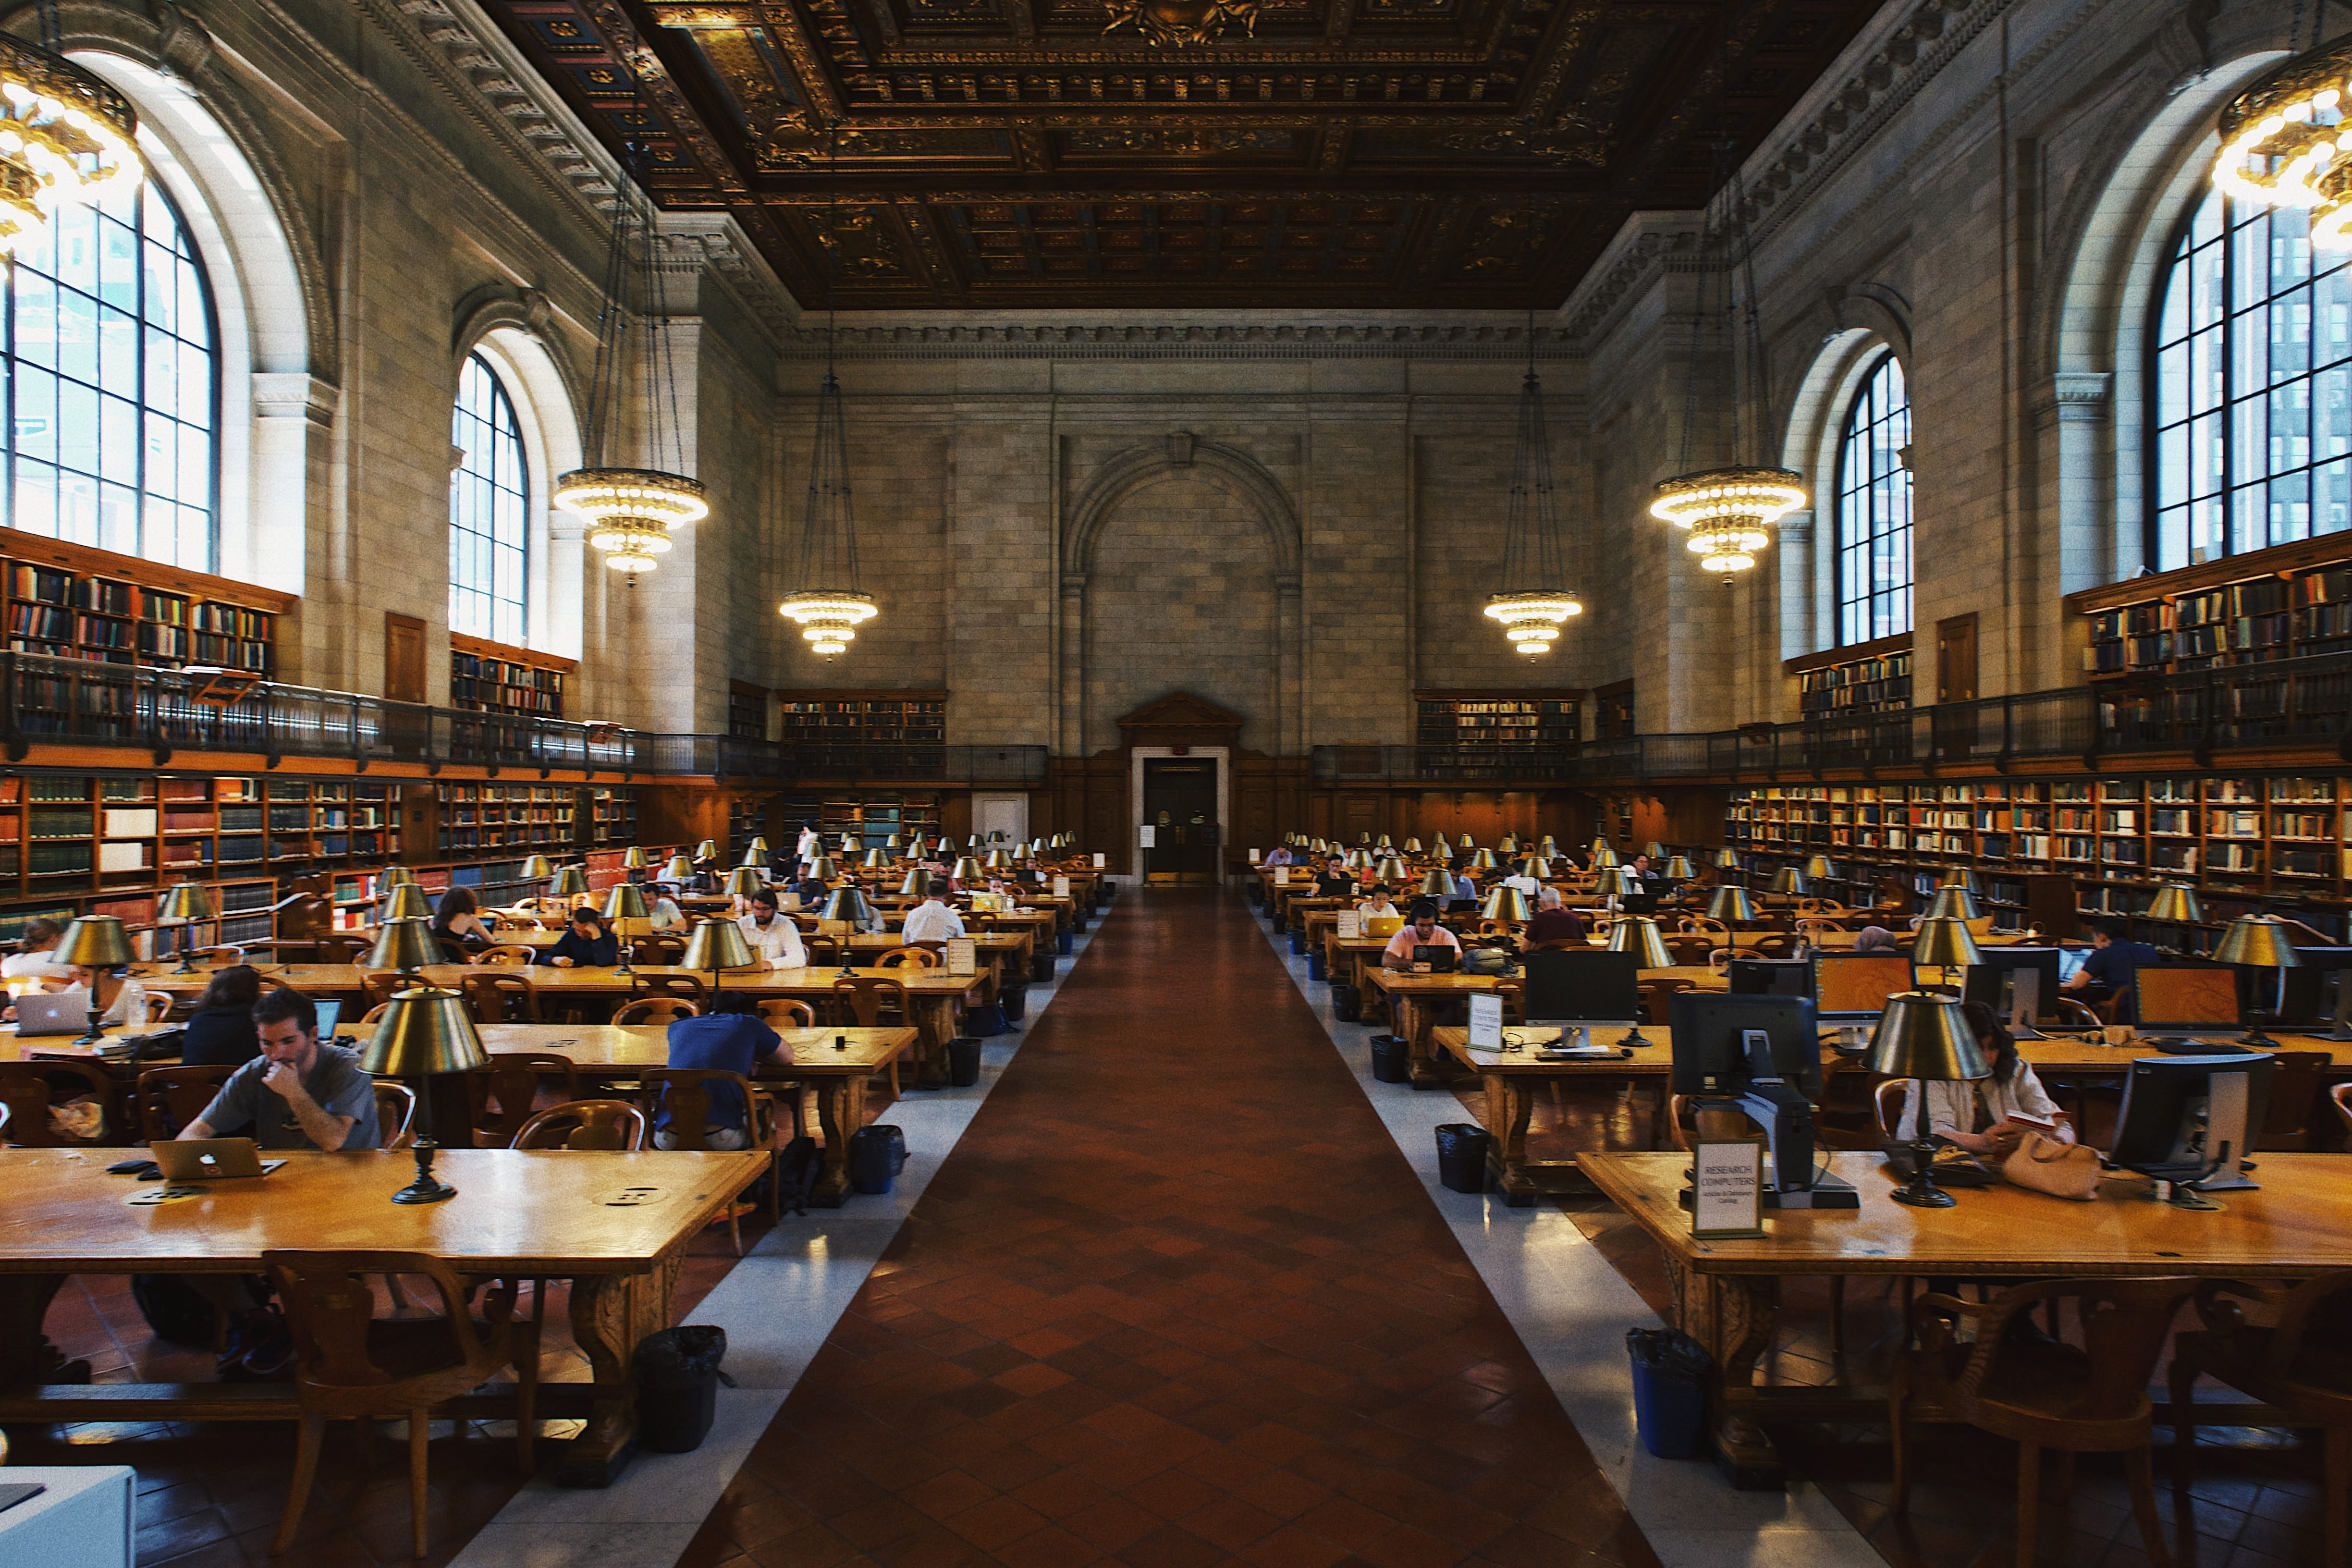 Library reading room; image by Robert Bye, via Unsplash.com.